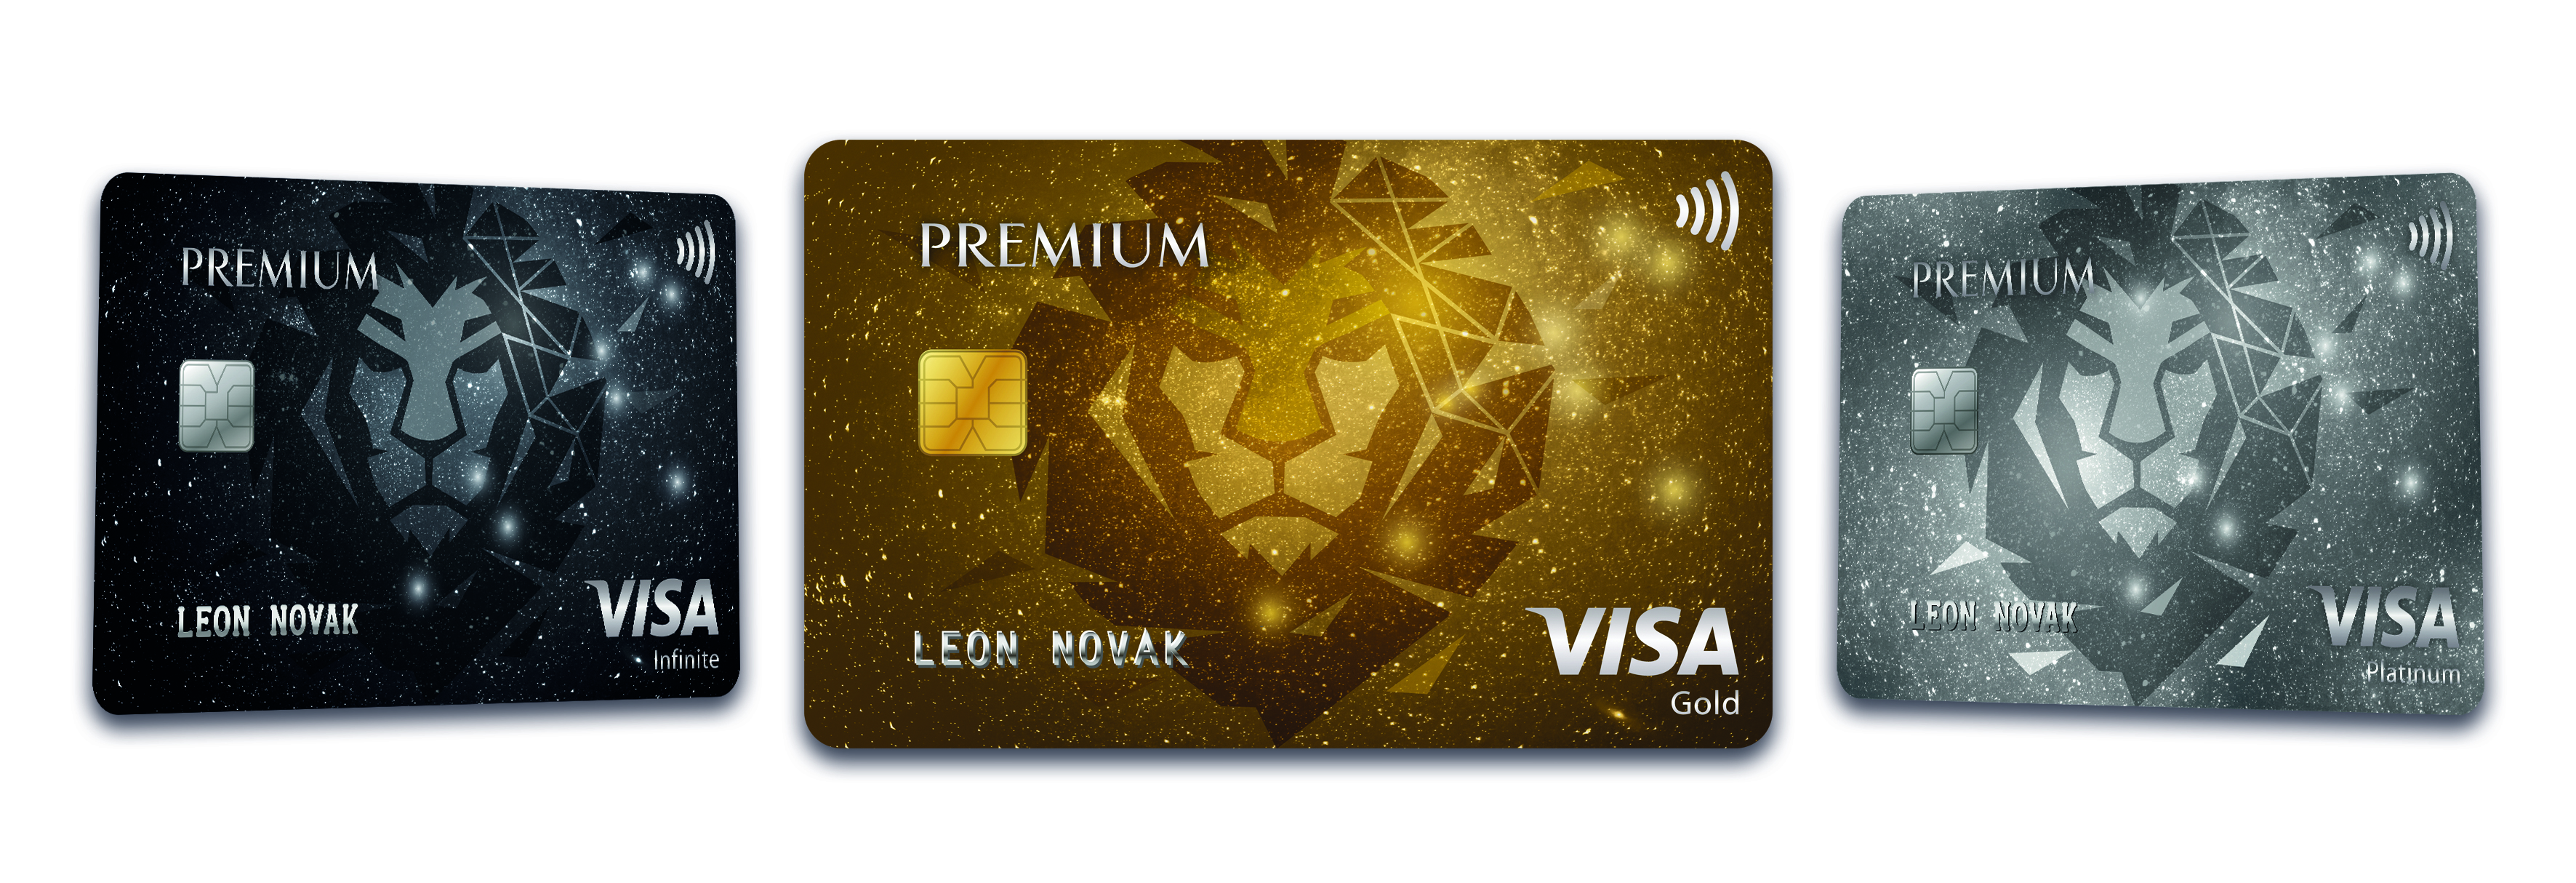 New Visa Premium Cards Launched